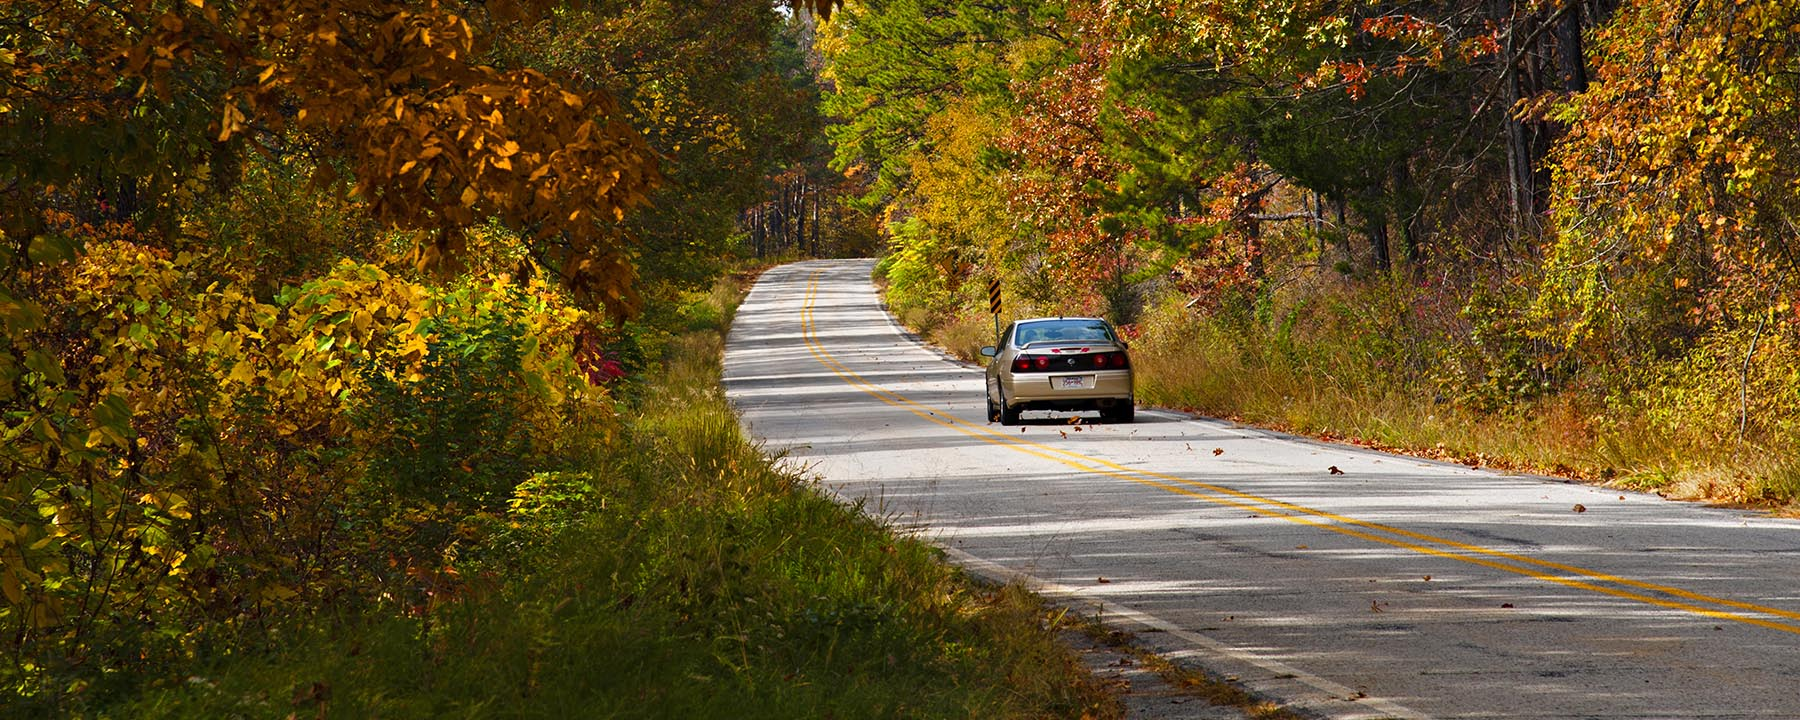 Arkansas-Good-Roads-Foundation-Slider-Image-8